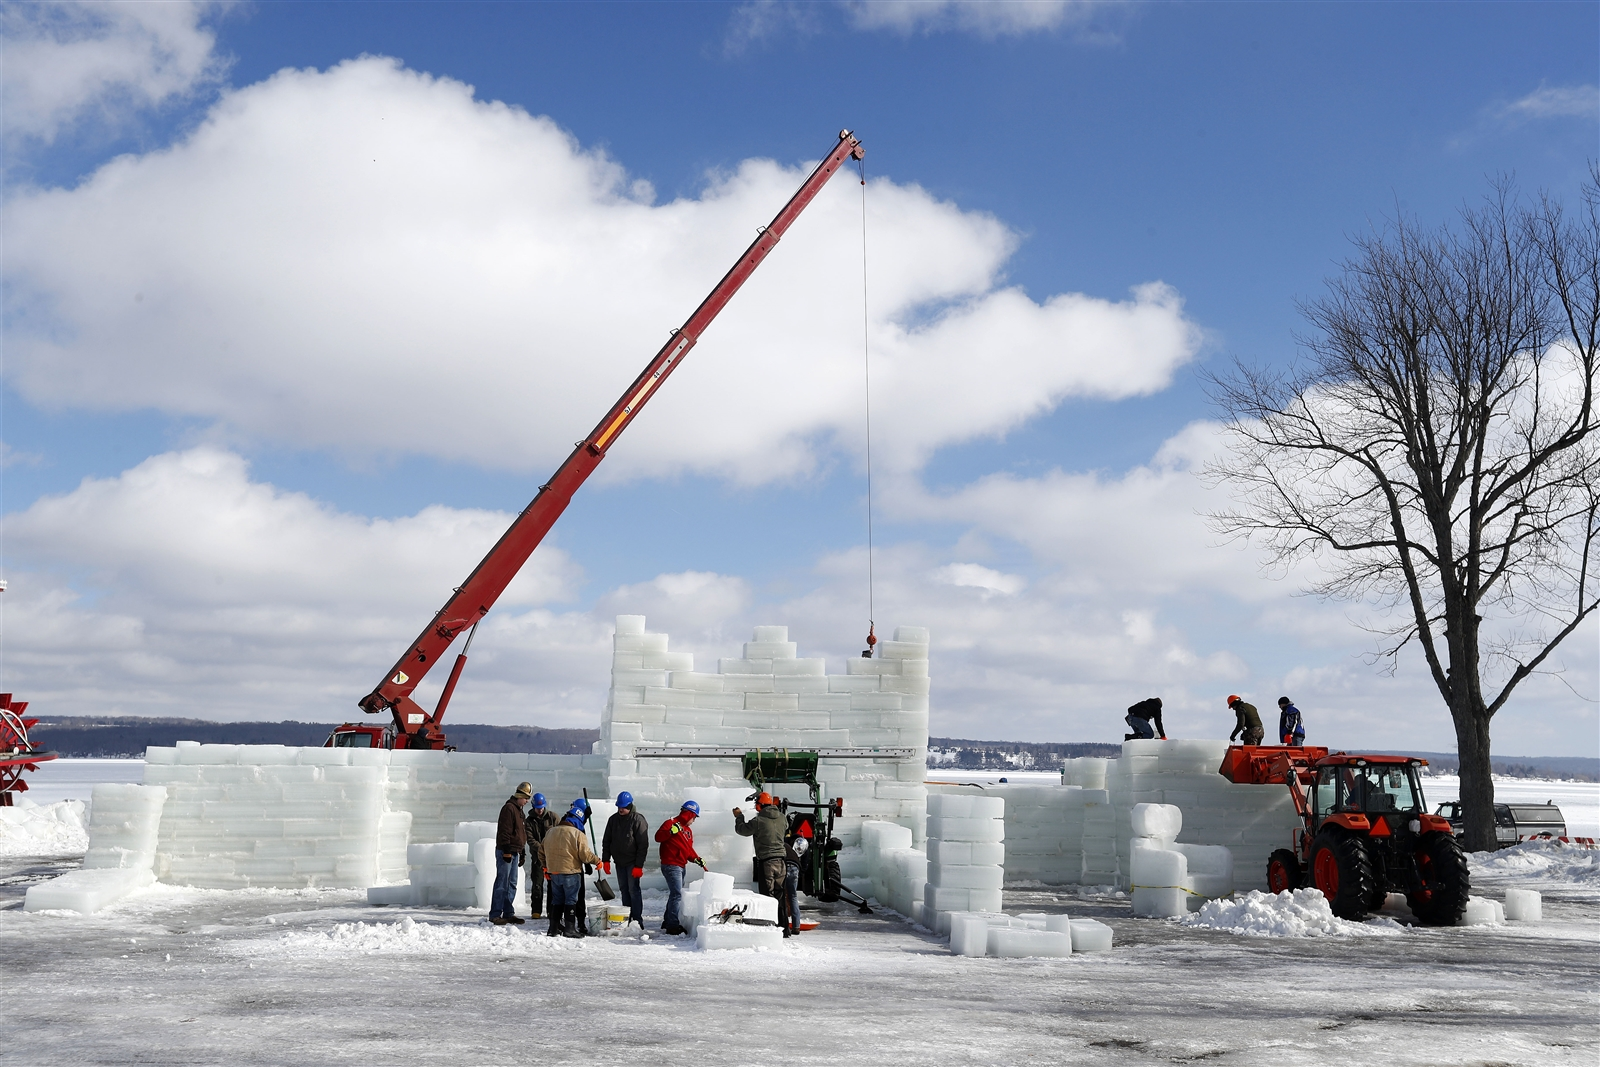 Crews move ice blocks into place as they build the Ice Castle in Mayville on Monday, Feb. 12, 2018.